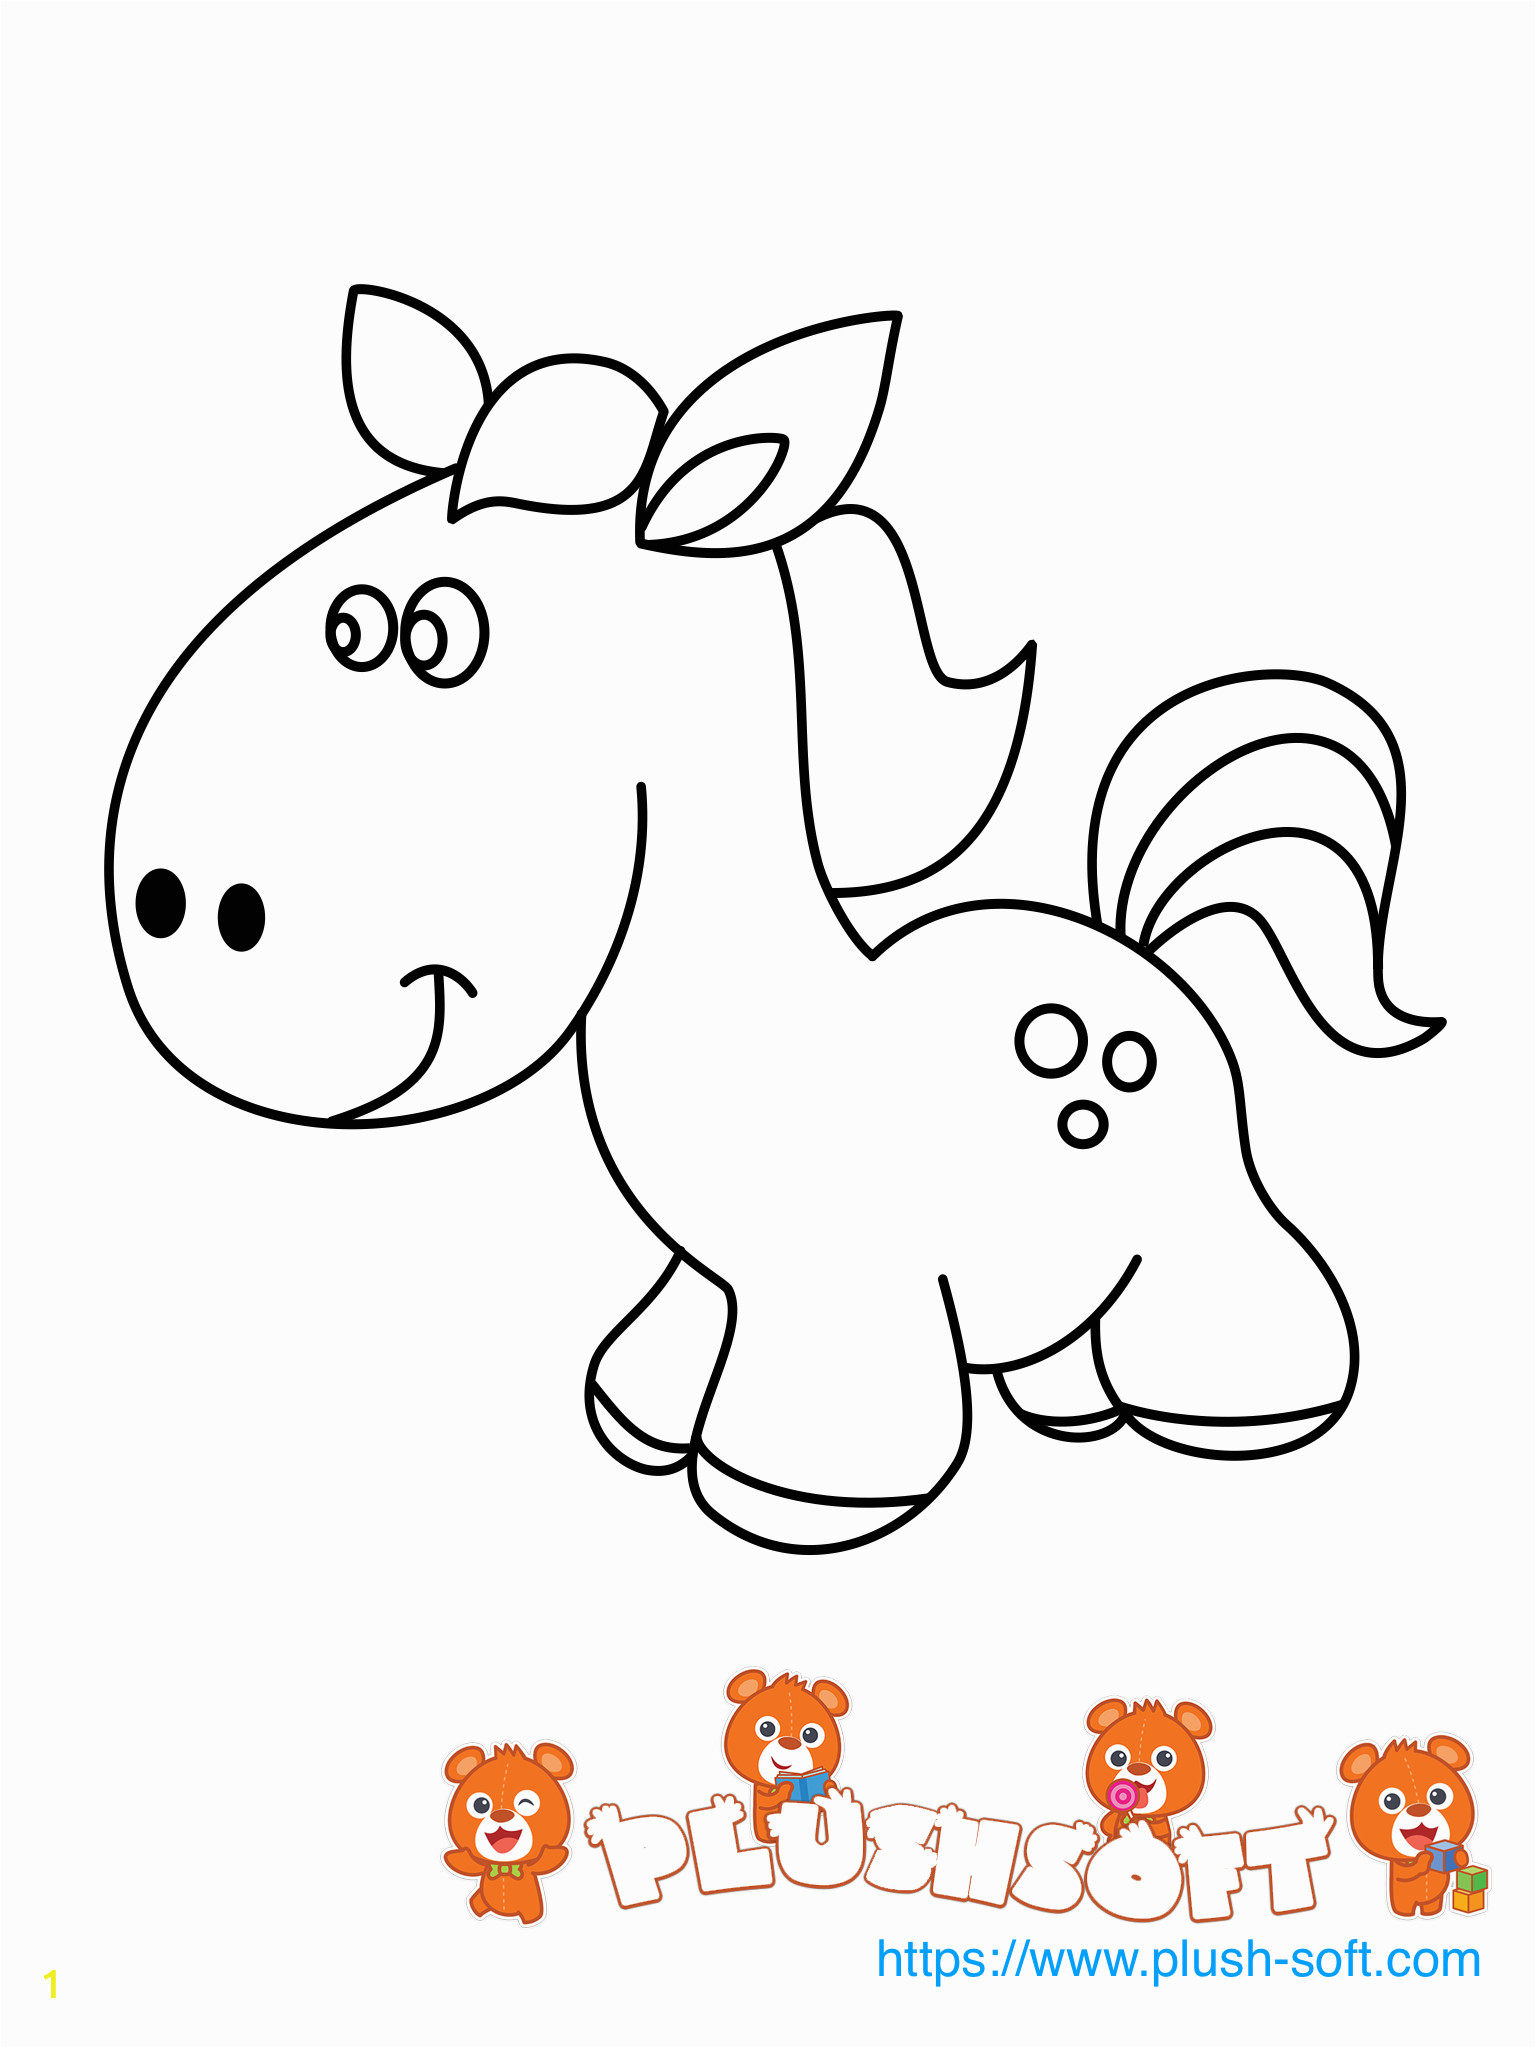 Stuffed Animal Coloring Pages Pin by Plush soft Ood On Printable Coloring Pages for